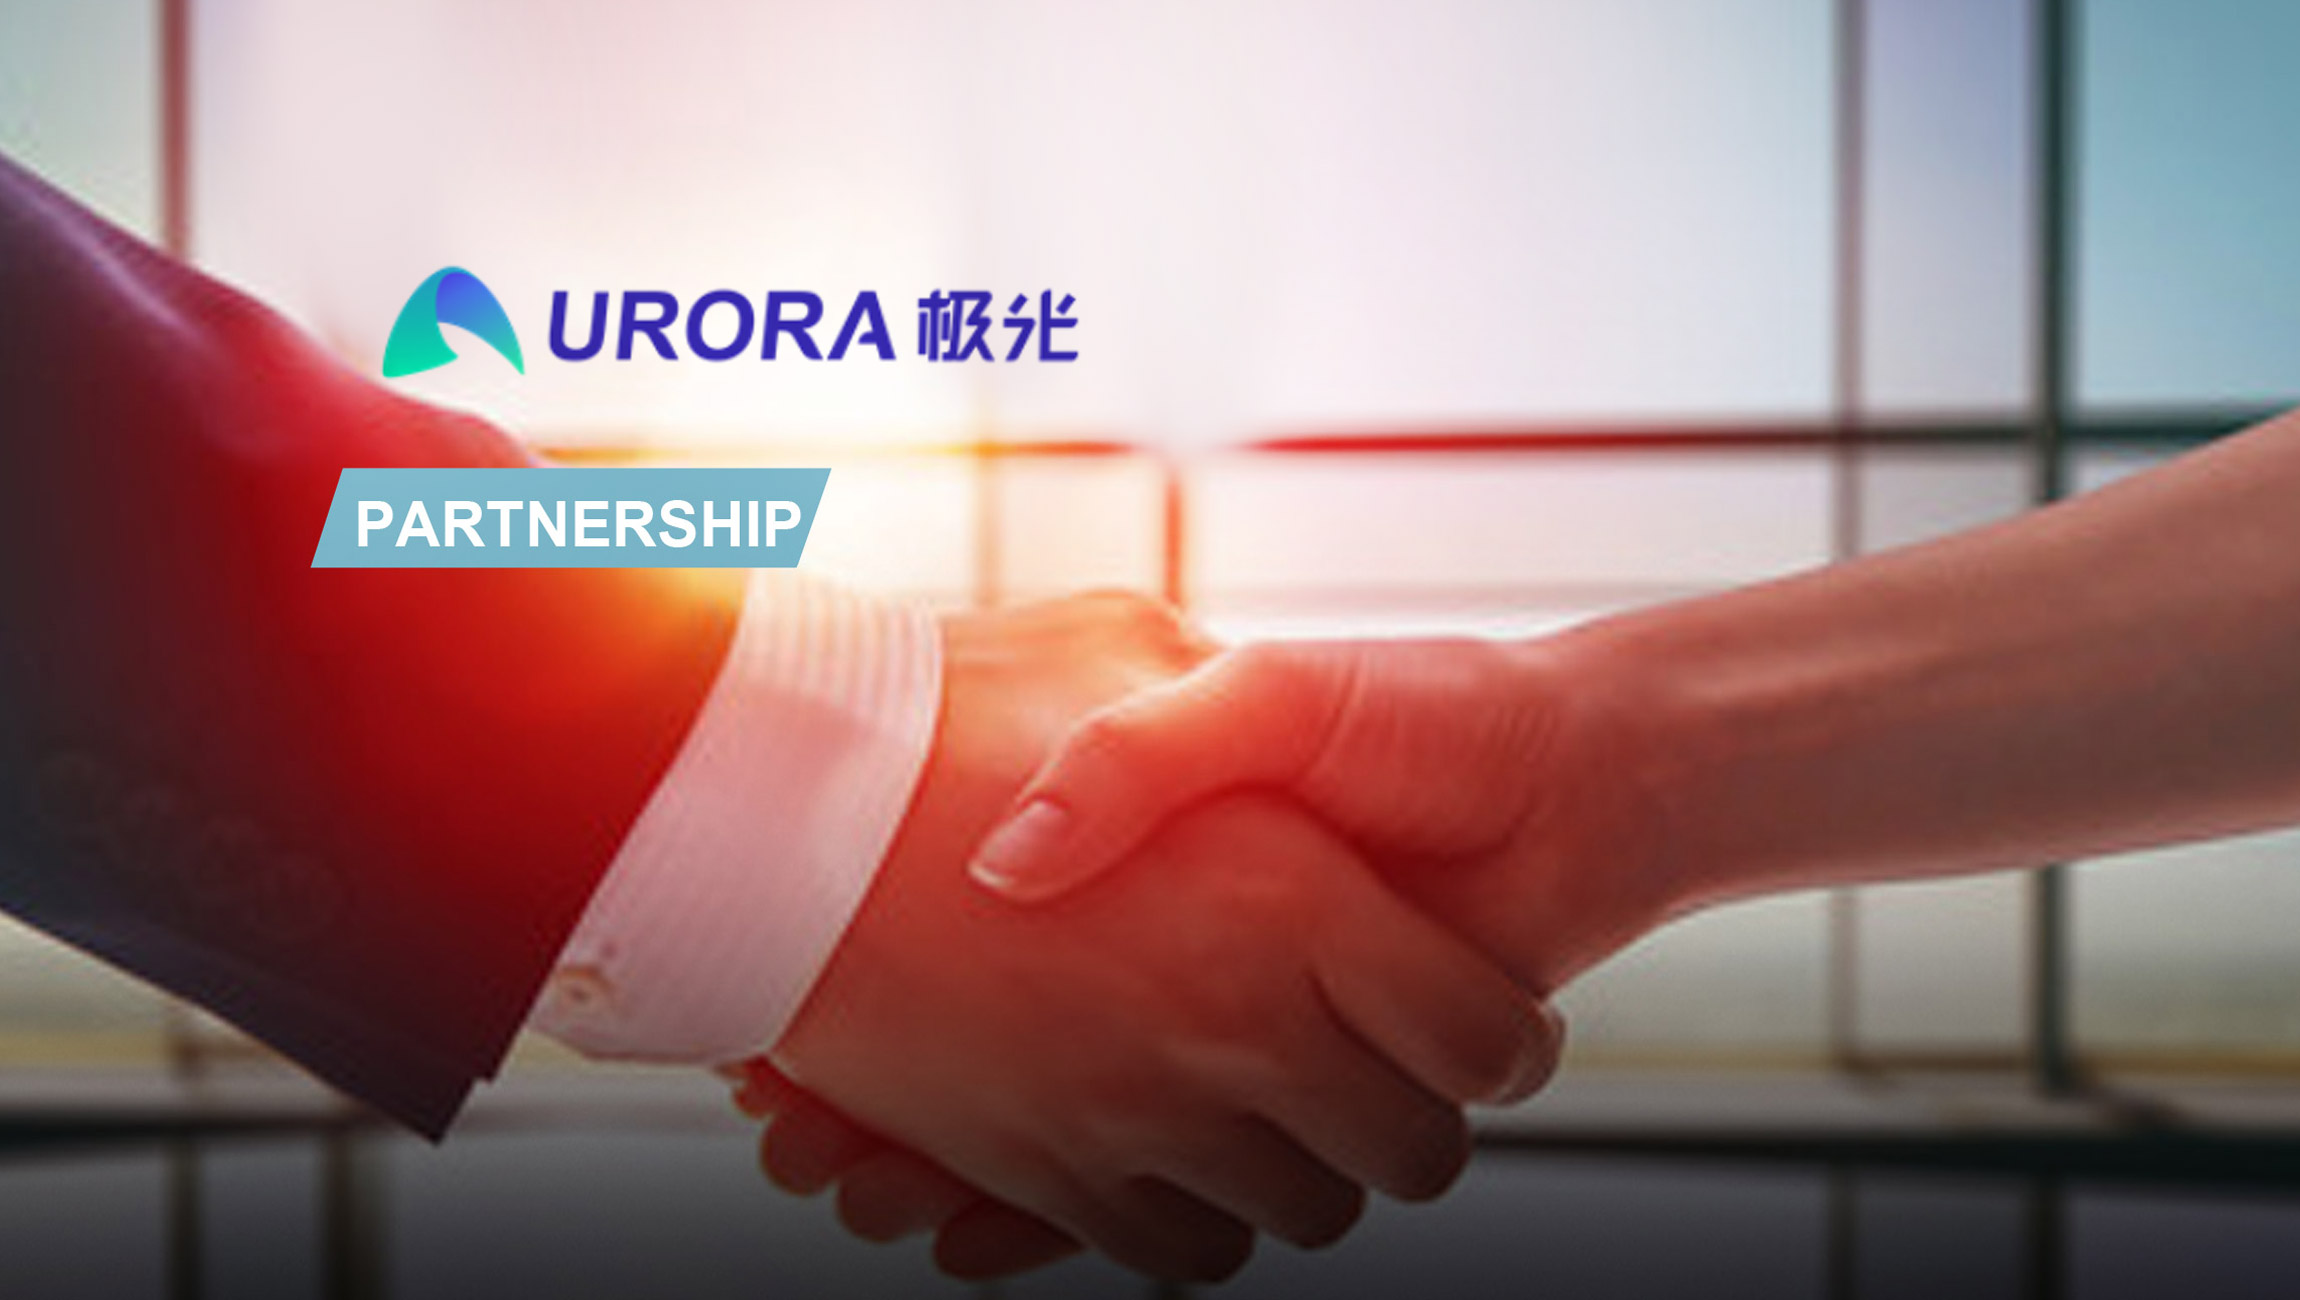 Aurora Mobile Partners with FARFETCH to Empower Global Fashion E-commerce Platform with AI Retail Technology